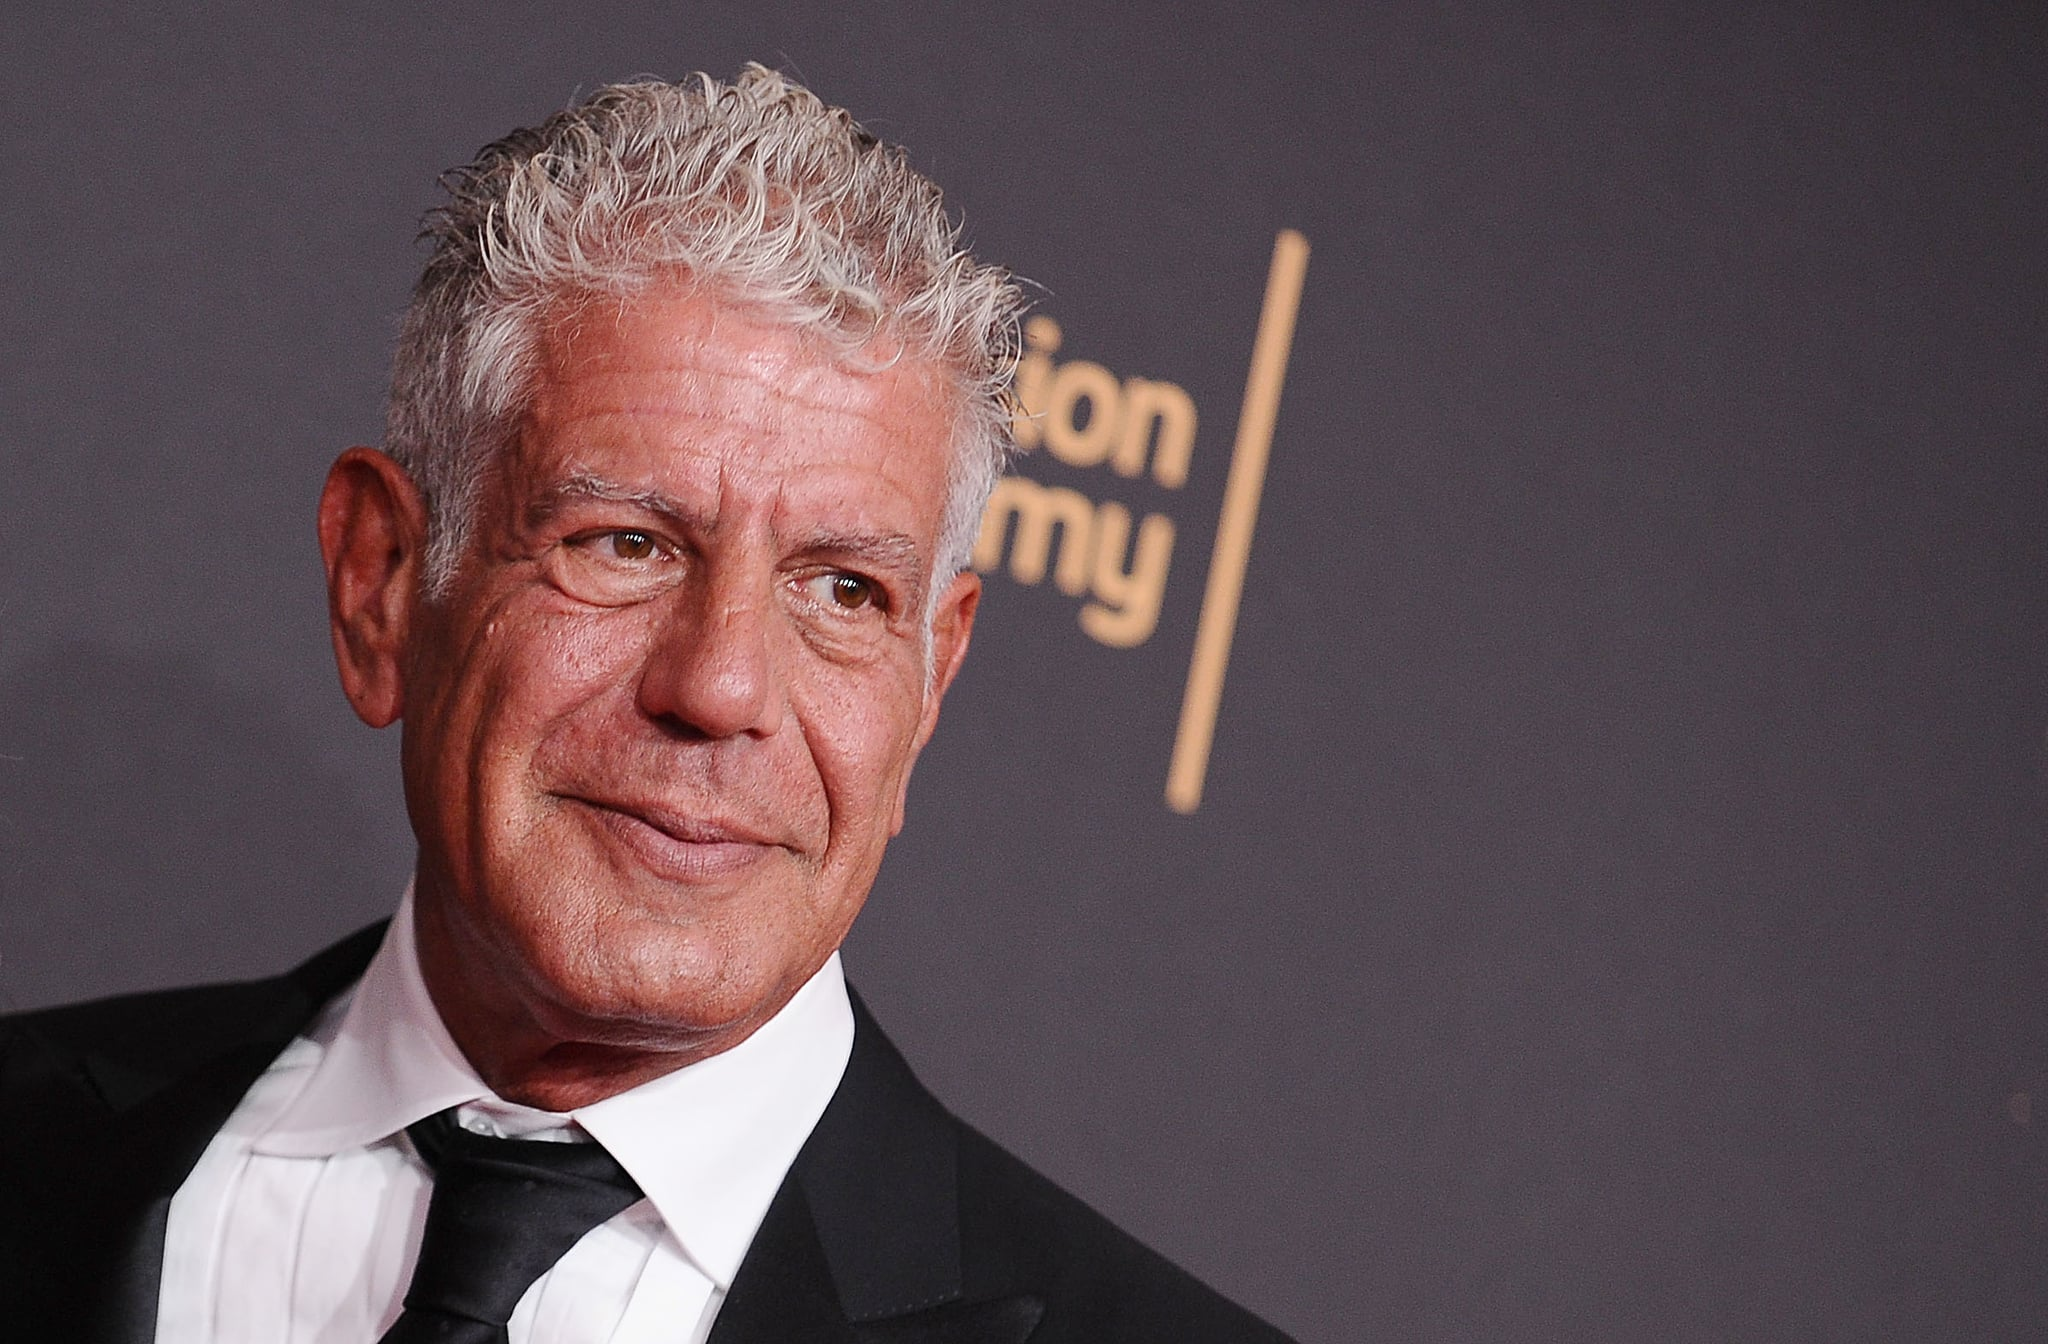 LOS ANGELES, CA - SEPTEMBER 09:  Anthony Bourdain attends the 2017 Creative Arts Emmy Awards at Microsoft Theater on September 9, 2017 in Los Angeles, California.  (Photo by Jason LaVeris/FilmMagic)